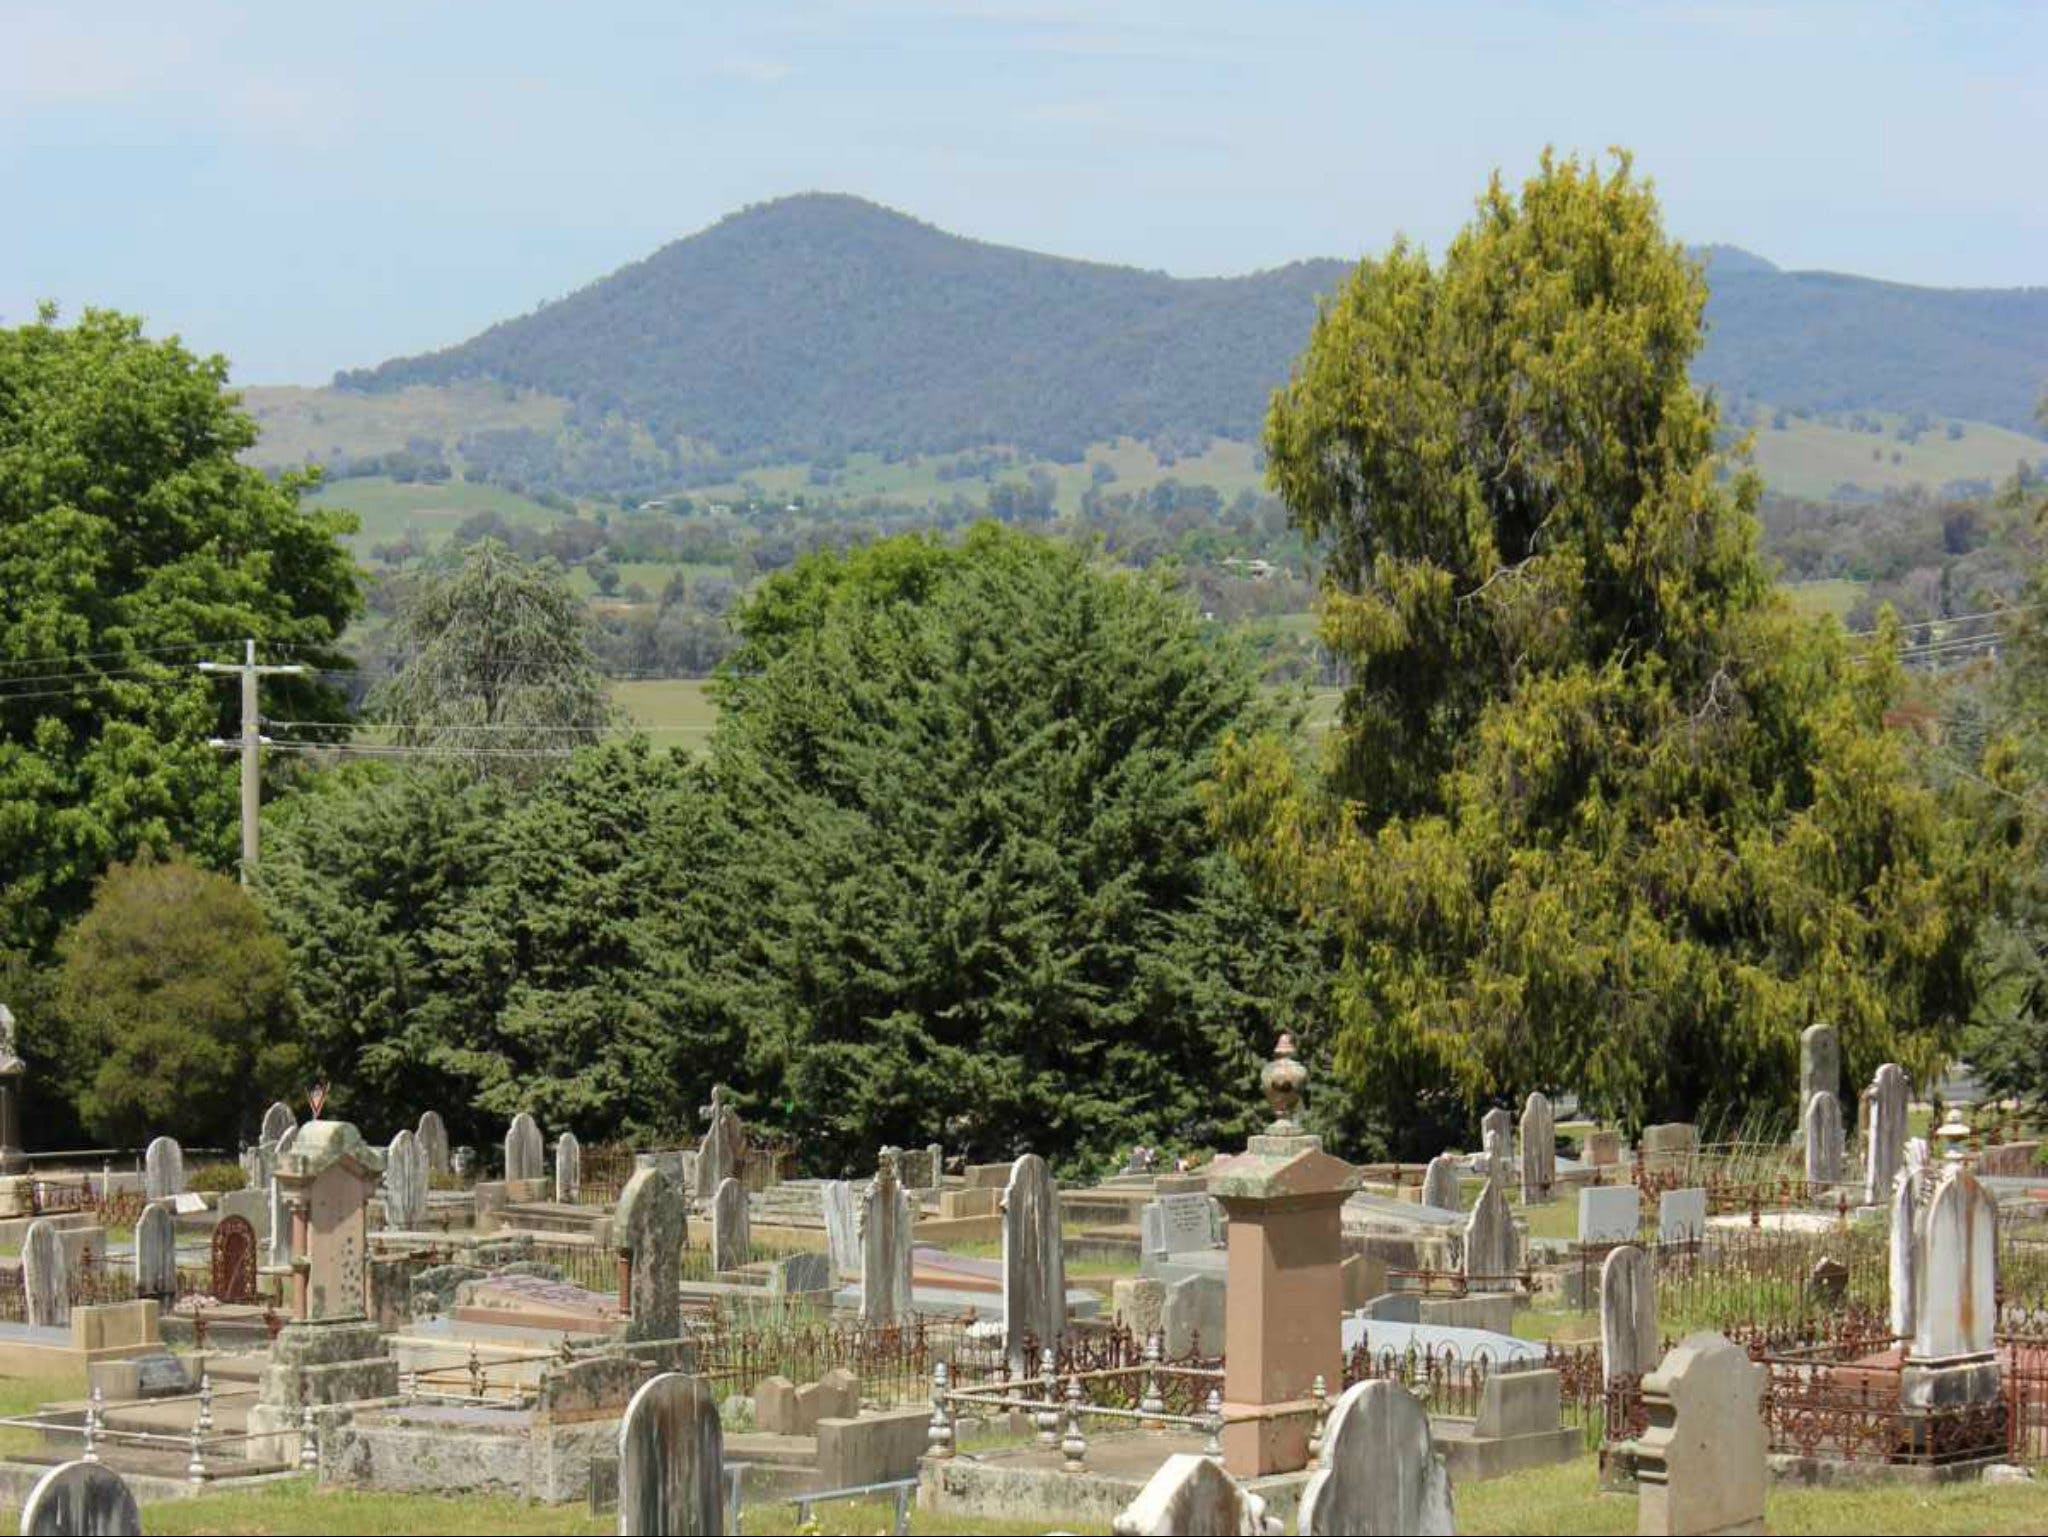 Yackandandah Cemetery - Accommodation in Bendigo